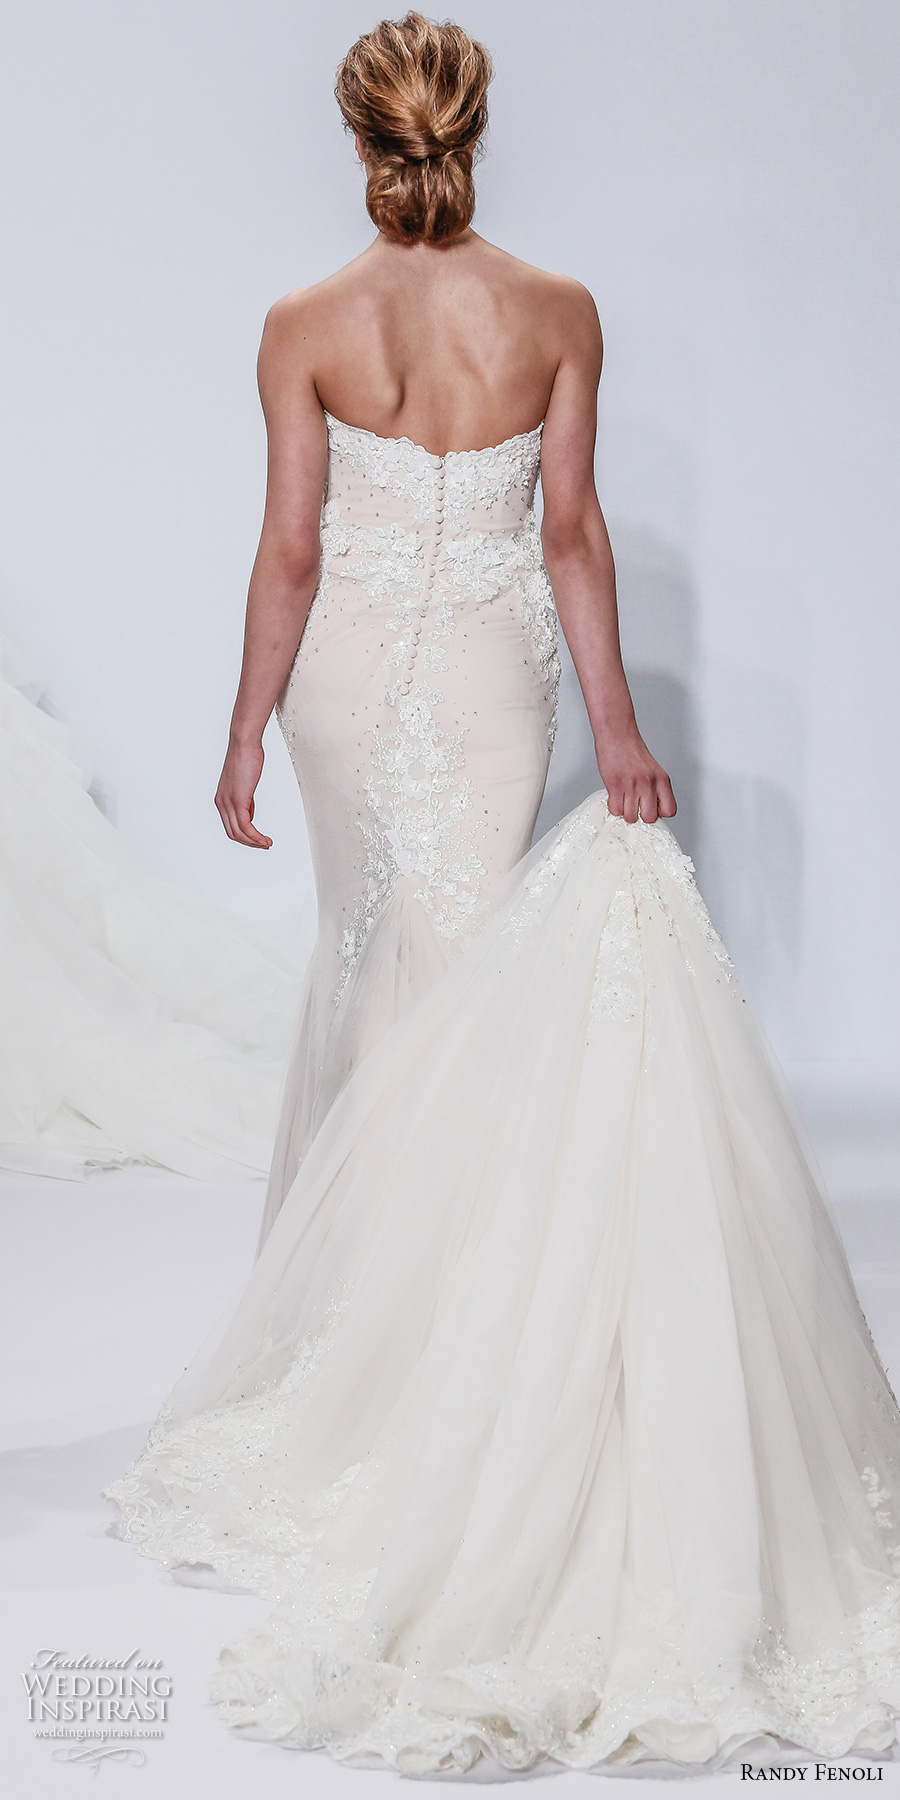 randy fenoli spring 2018 bridal strapless sweetheart neckline heavily embellished bodice elegant romantic fit and flare wedding dress a  line overskirt chapel train (03) bv